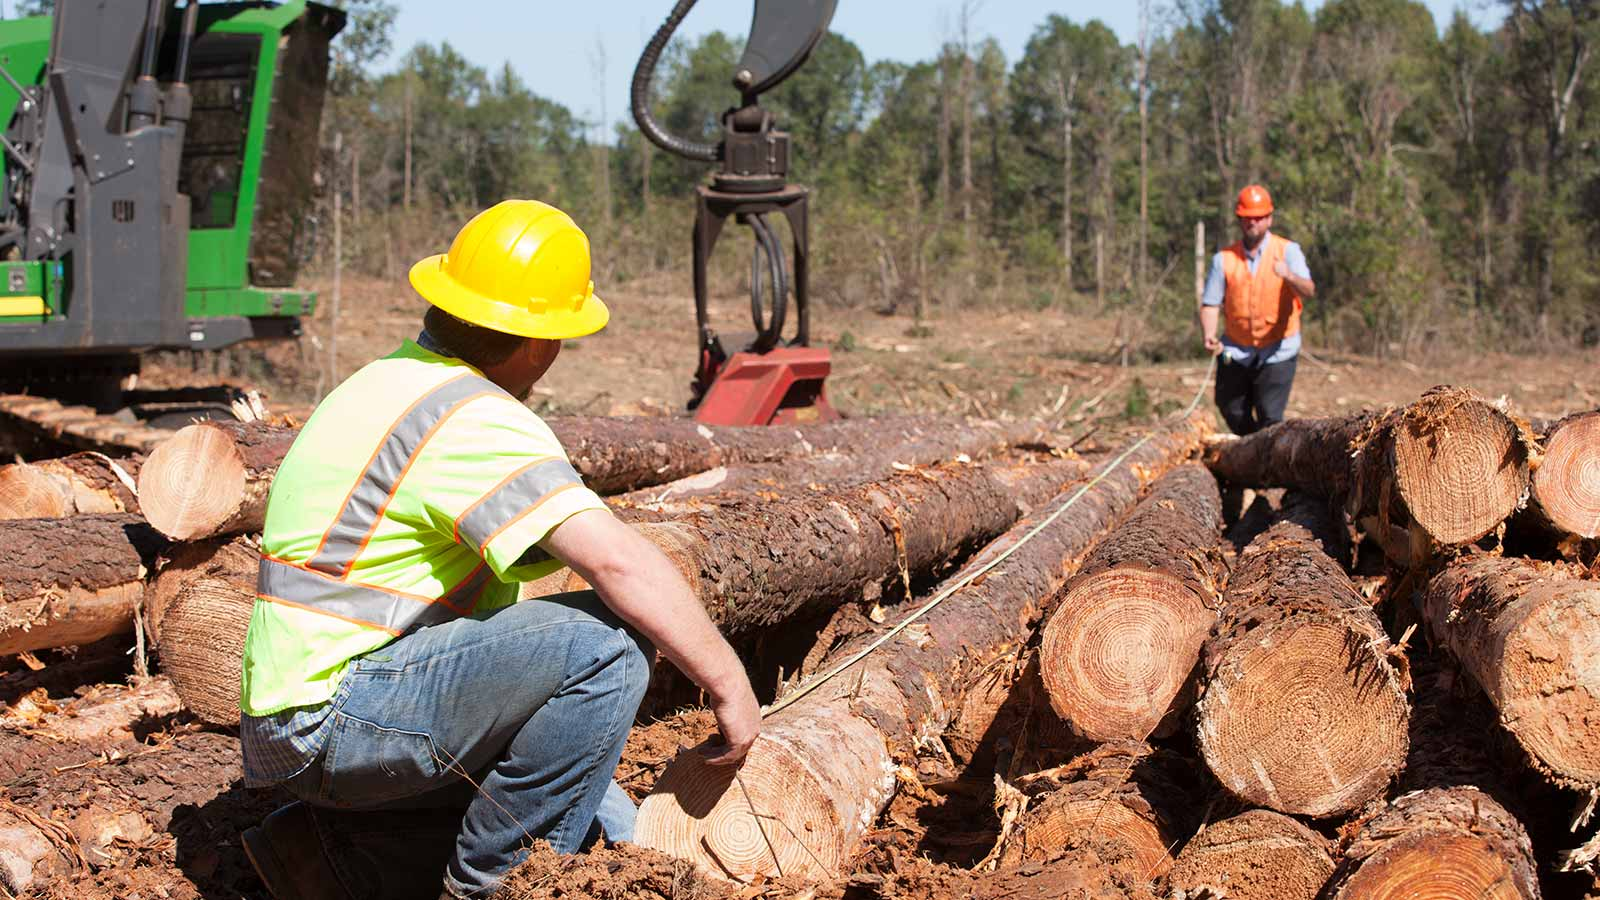 Clark Snipes and Jess Alexander of Oakland Wood Products measuring logs with a John Deere 2154G Swing Machine in the background.